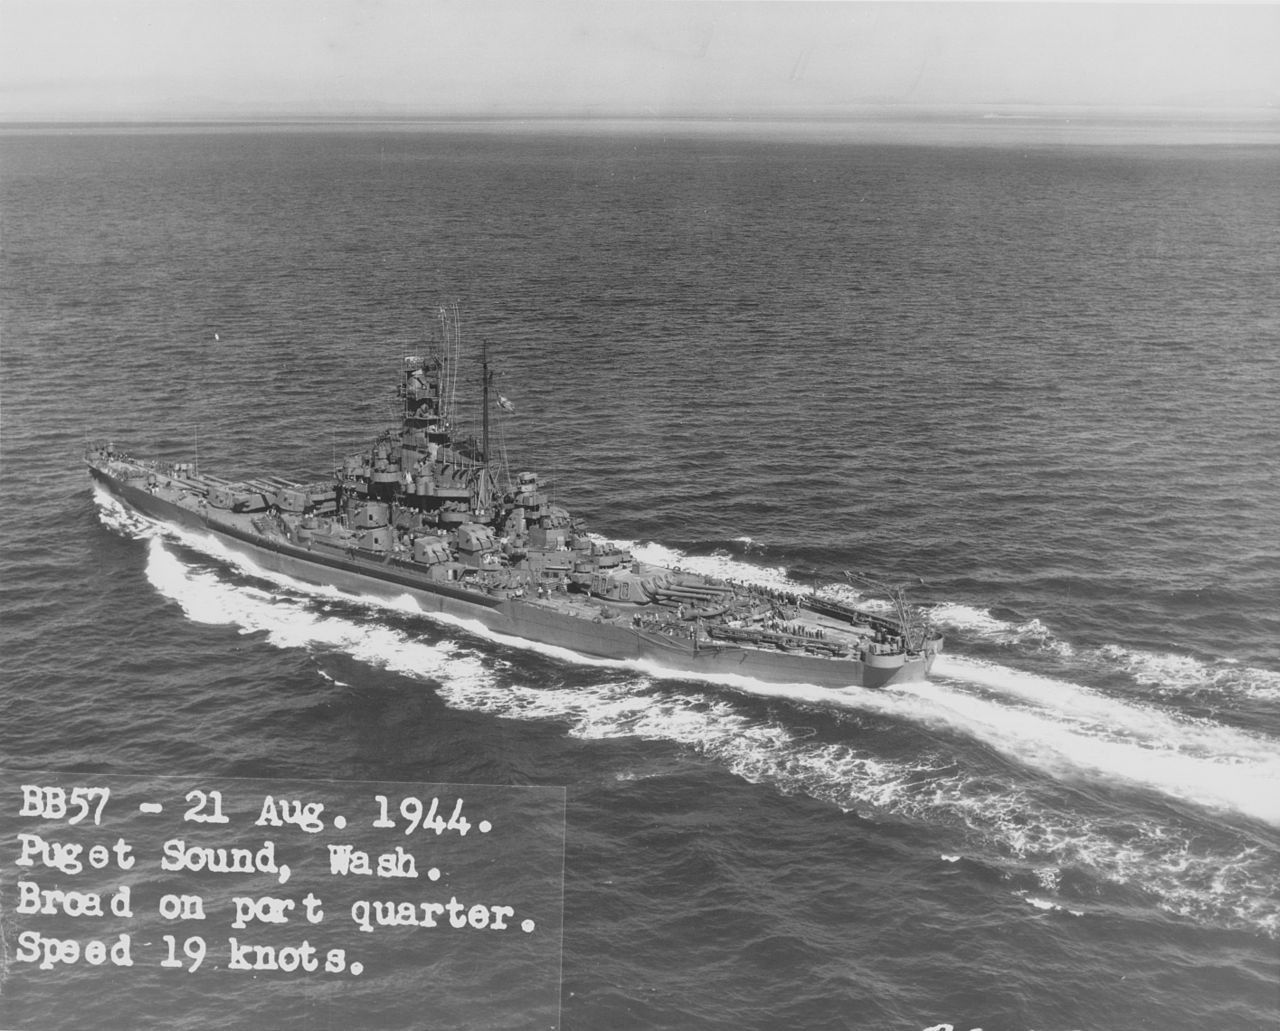 USS_South_Dakota_in_Puget_Sound_NARA_BS_